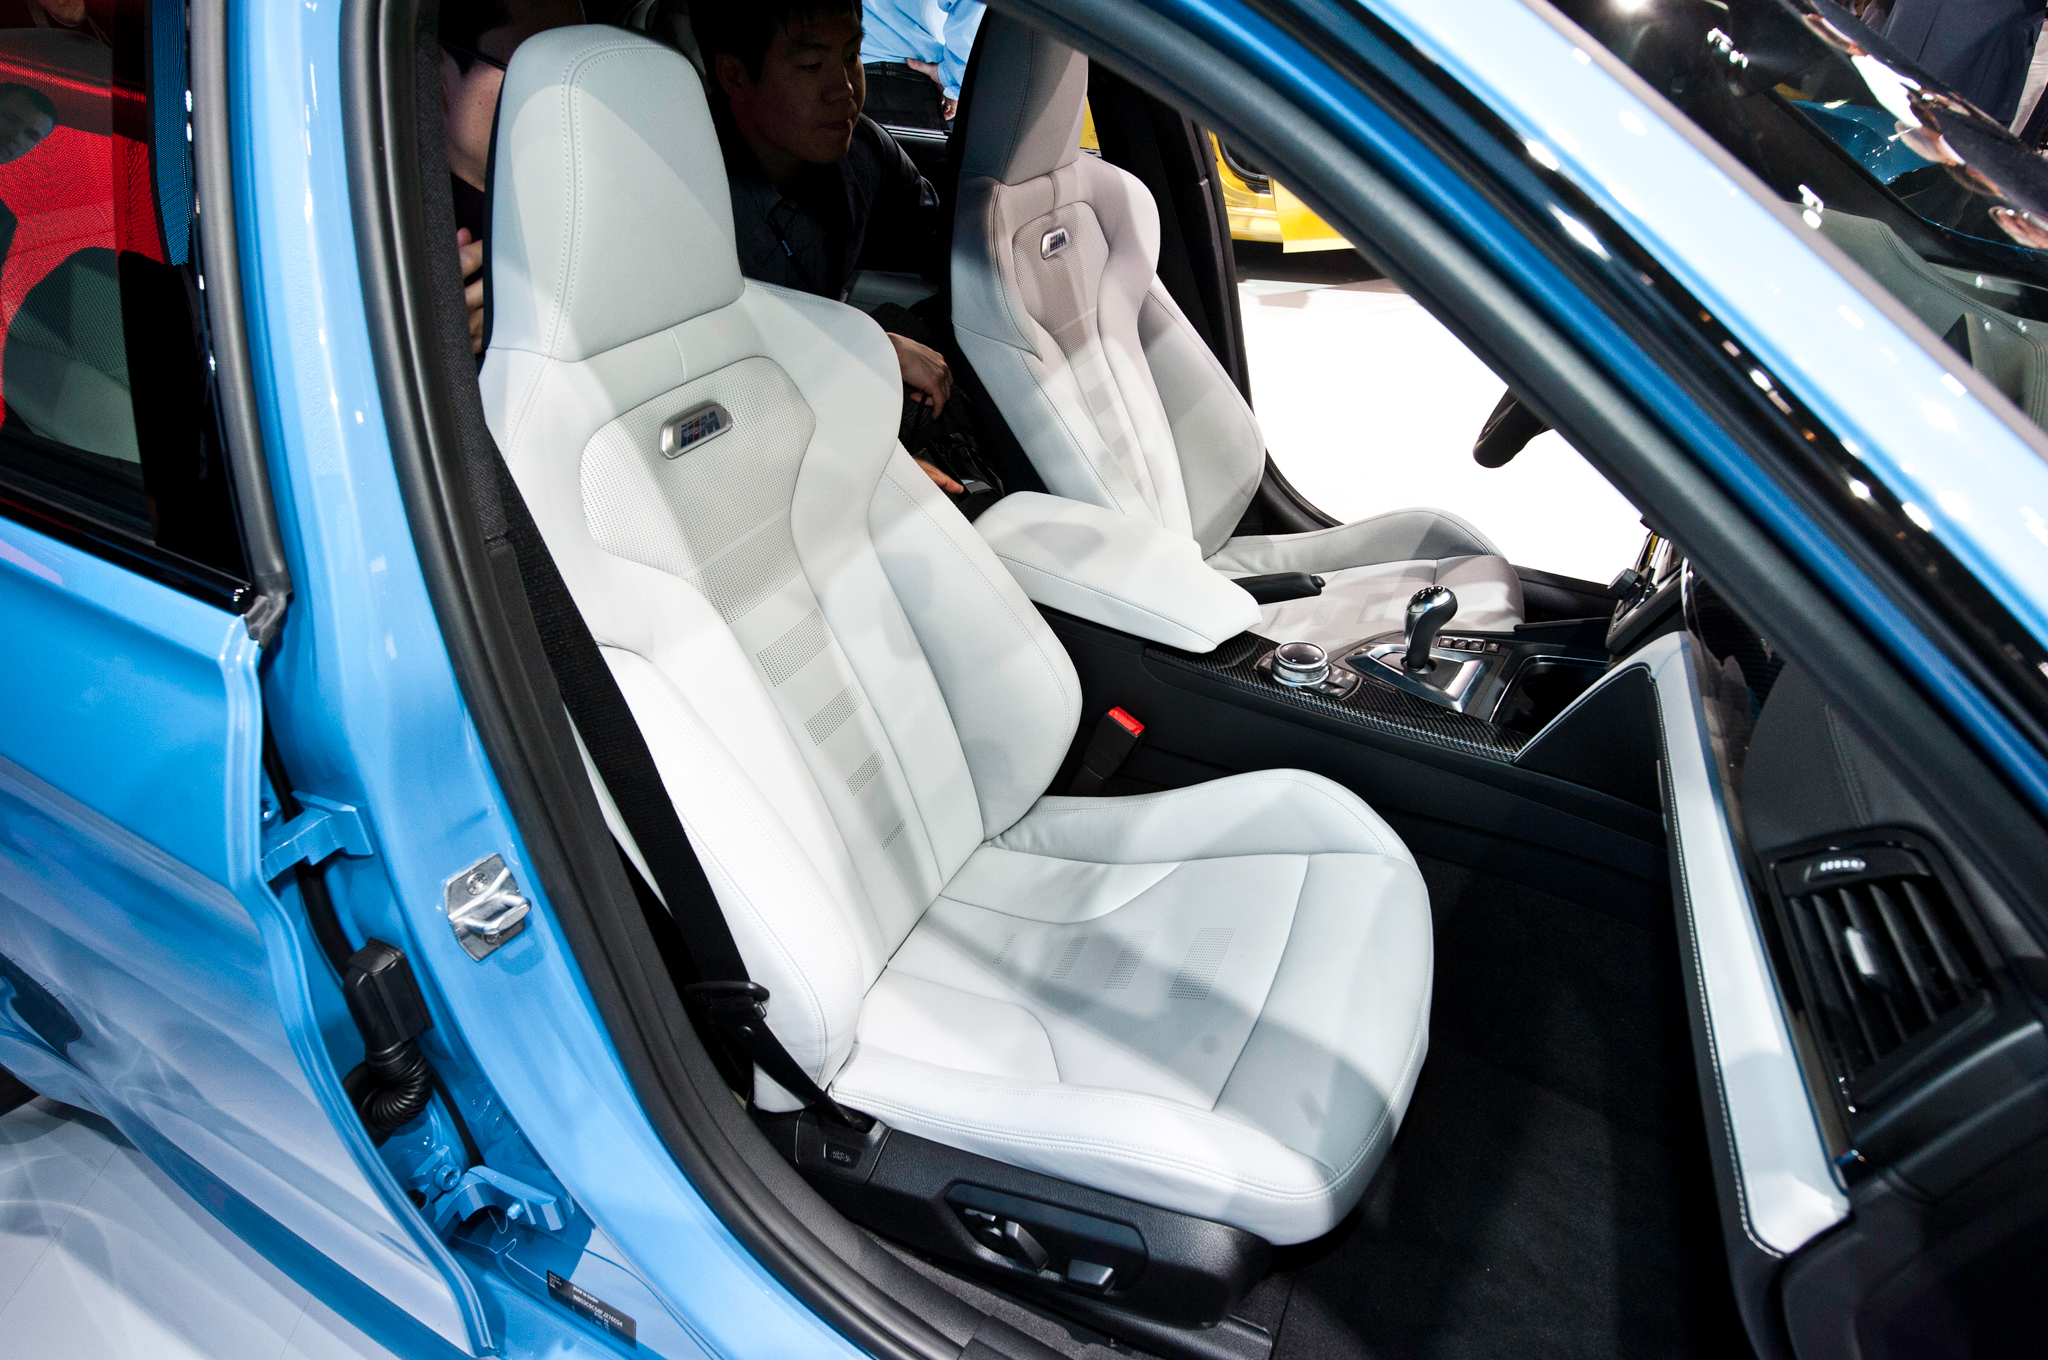 2015 Bmw M3 Interior Seat View (Photo 48 of 55)